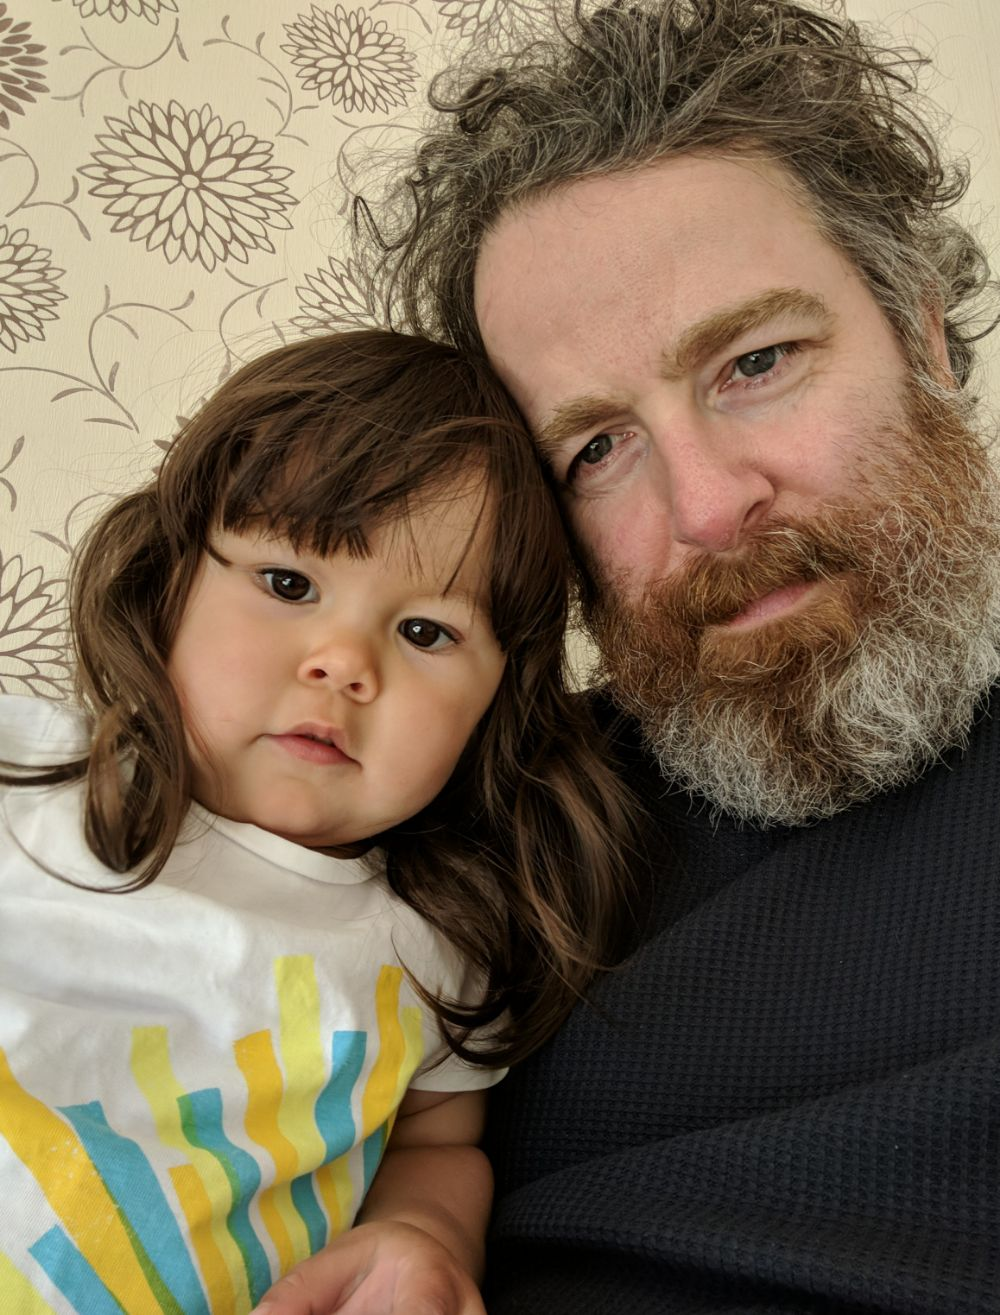 A waist up selfie of a 2 year old girl with long brown hair and a white t-shirt leaning her head against her papa, a middle-aged man with a ginger and white beard, greying straggly hair wearing a dark grey wooly jumper